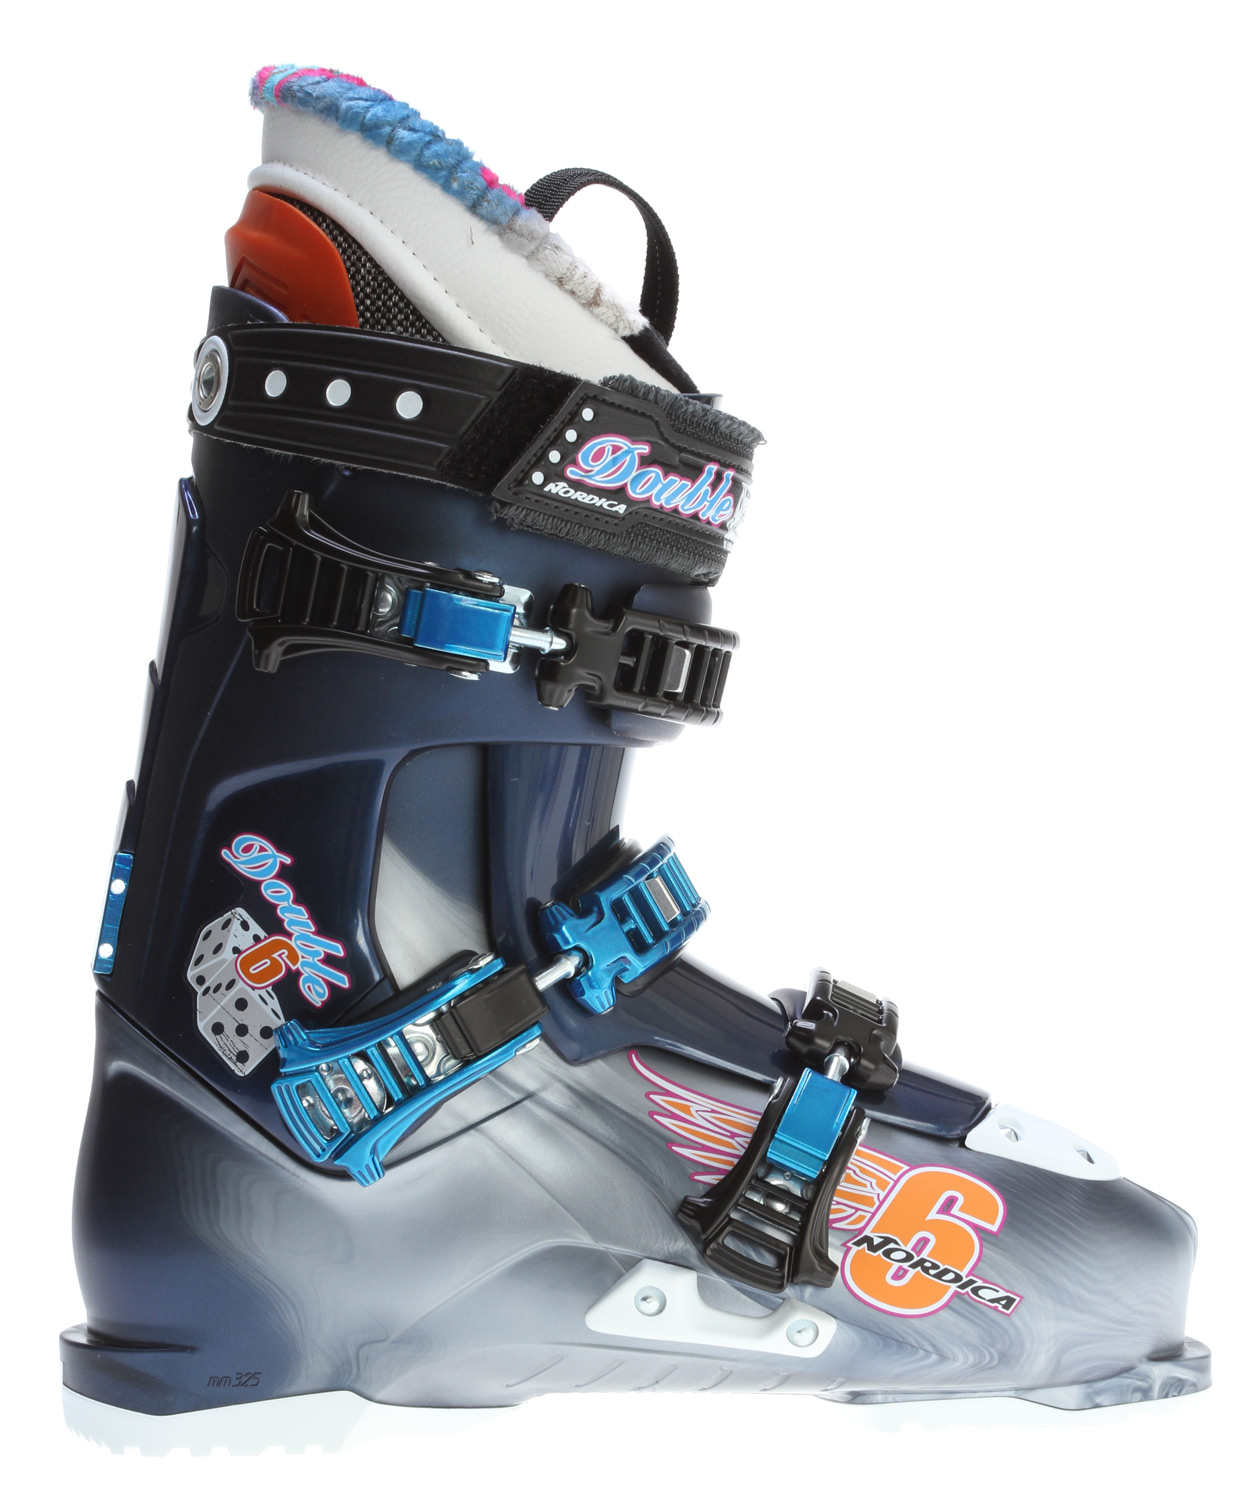 Ski For all of your outdoor winter skiing needs, the Nordica Double Six Ski Boots for men will be right there with you keeping up. A 3-piece easy entry system increases your time on the slopes by making the getting ready process simple. The Double Six's shock erasing technology provides comfort and enhances performance through bumps and moguls for many long days out in the pow. Featuring Triax Ultra lite polymer, this boot is light-weight and keeps energy in every turn so you can power down the mountain skillfully. Get the best in quality and unbridled performance with Nordica's Double Six boots!Key Features of the Nordica Double Six Ski Boots:  Triax Ultra lite polymer  45 degree Instep retention  Progressive flex with tongue rebound  Full shock eraser  PFP FSE liner  3 Piece easy entry shell construction  High traction rubber soles  Paint clip holder  Alloy buckles  Size range 24.5-29.5 MP (half sizes only   Last 100mm - $259.95